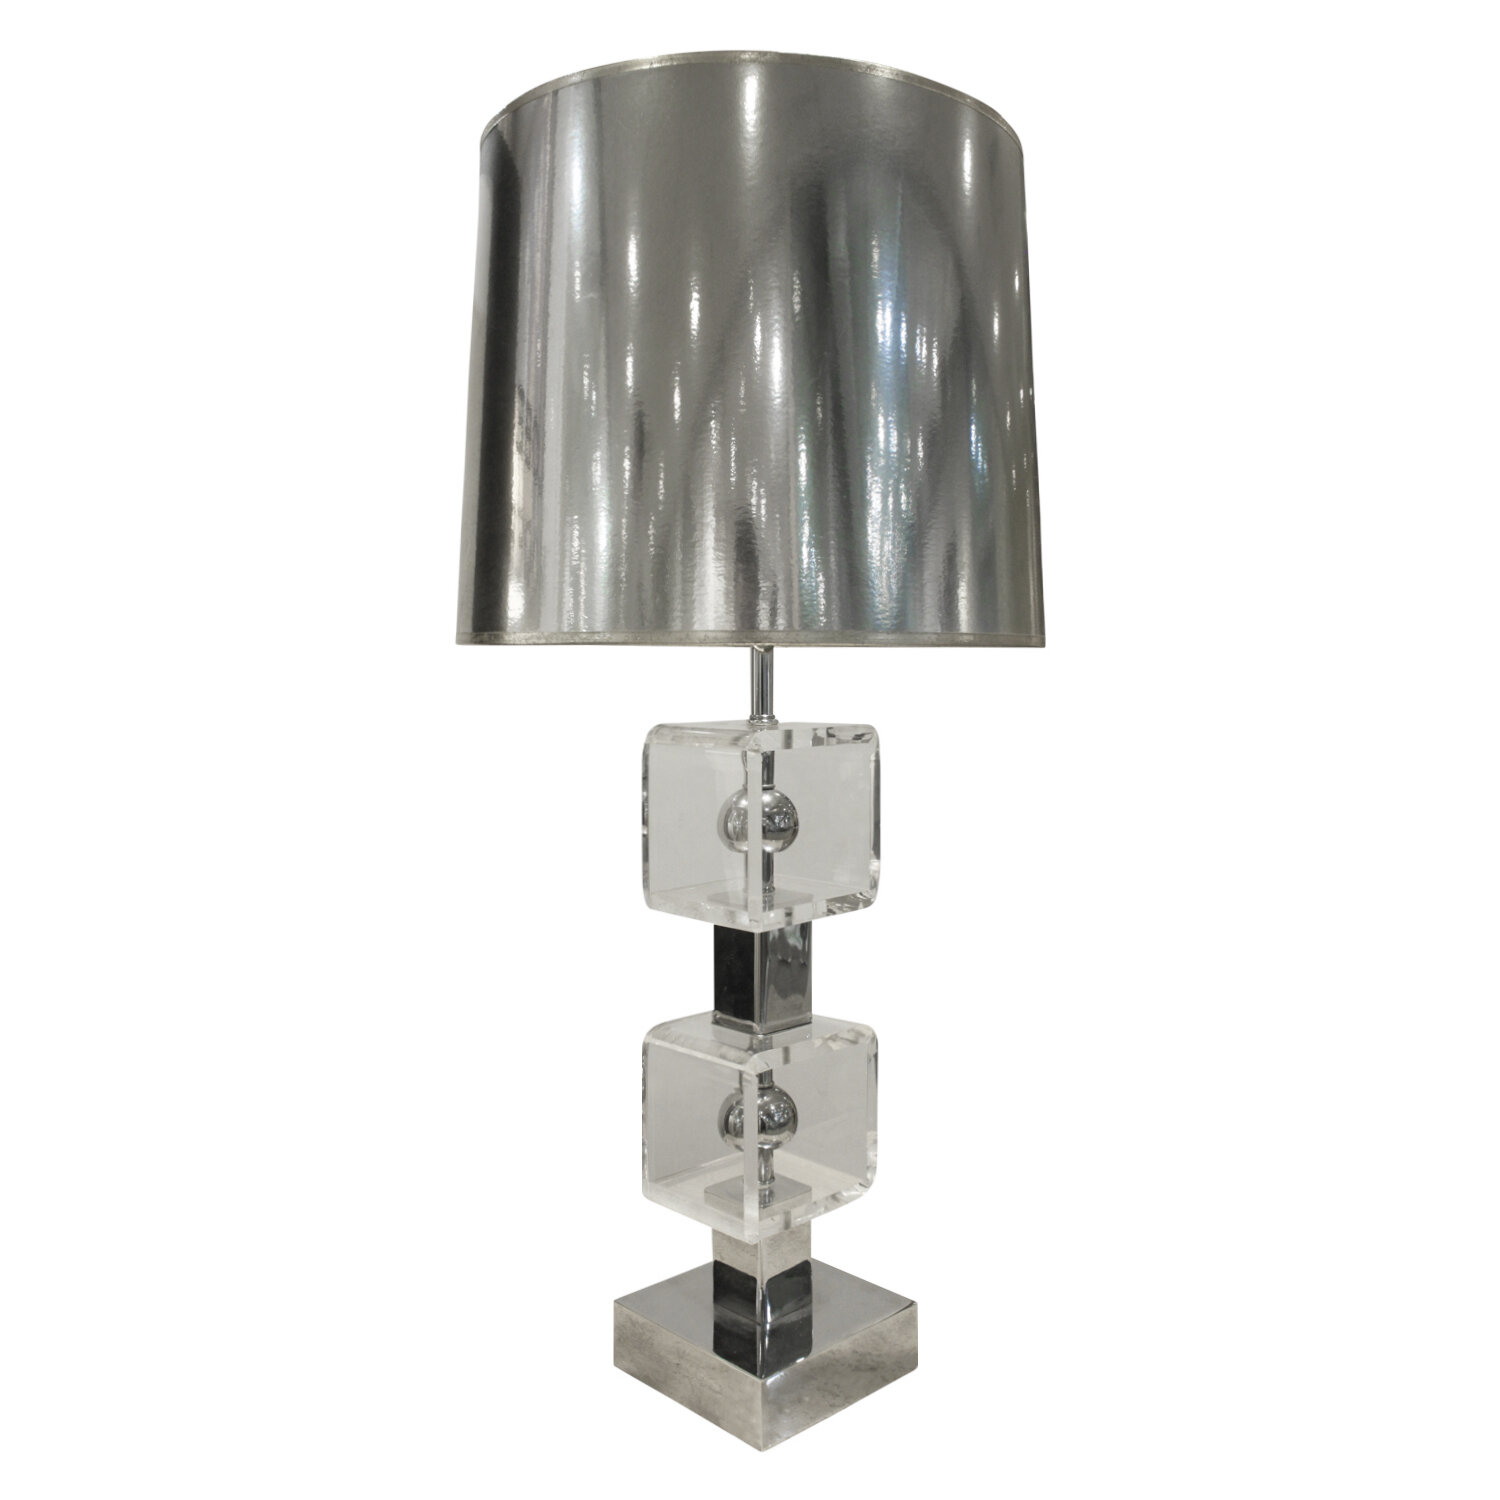 70s 35 lucite + chrome balls tablelamp288 angl.jpg